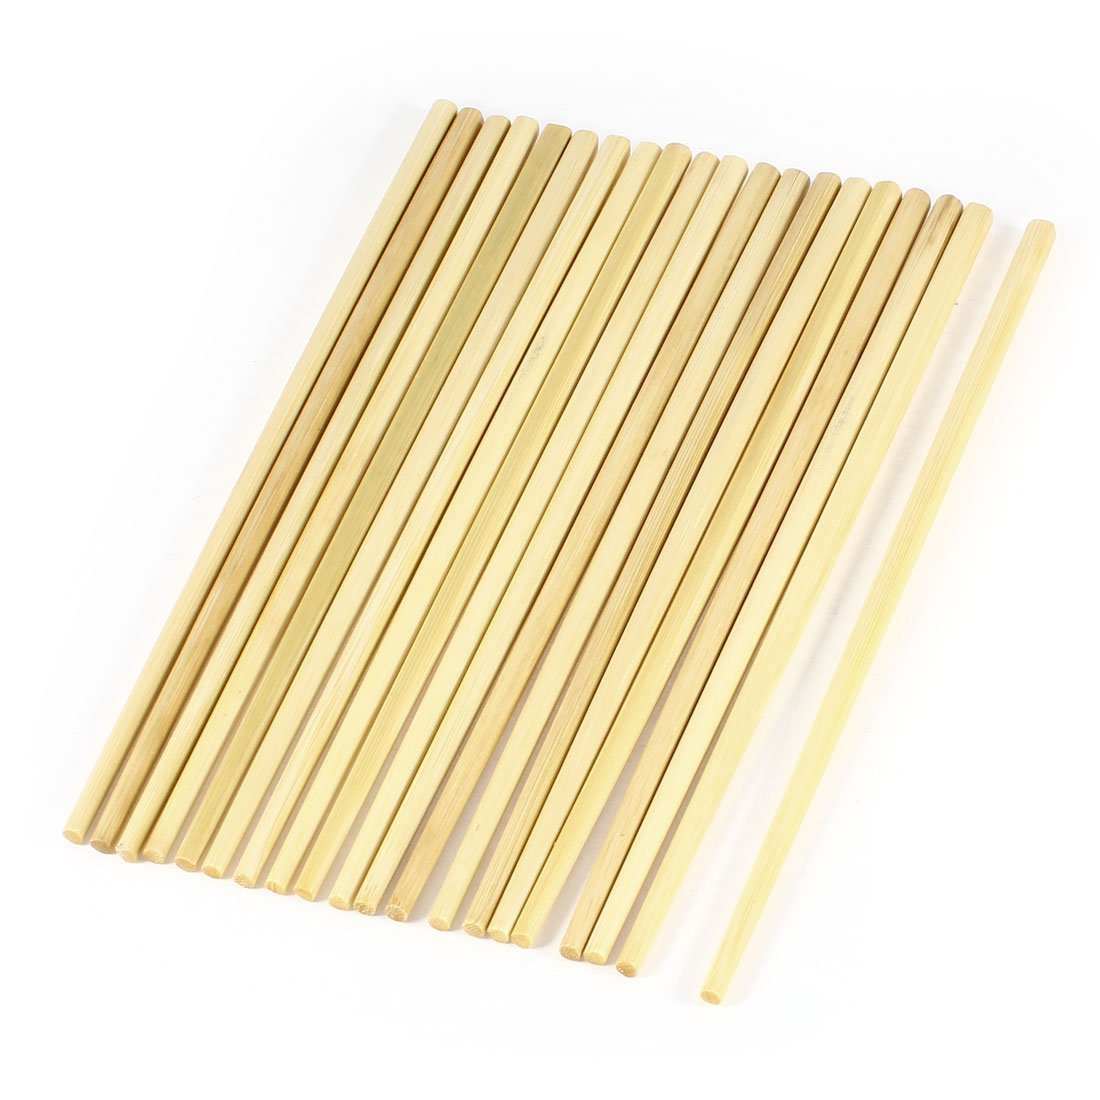 Bamboo Chopsticks - TOOGOO(R) 10 Pair 24cm Long Beige Bamboo Chinese Traditional Kitchen Chopsticks SODIAL(R) LEPAZN4432